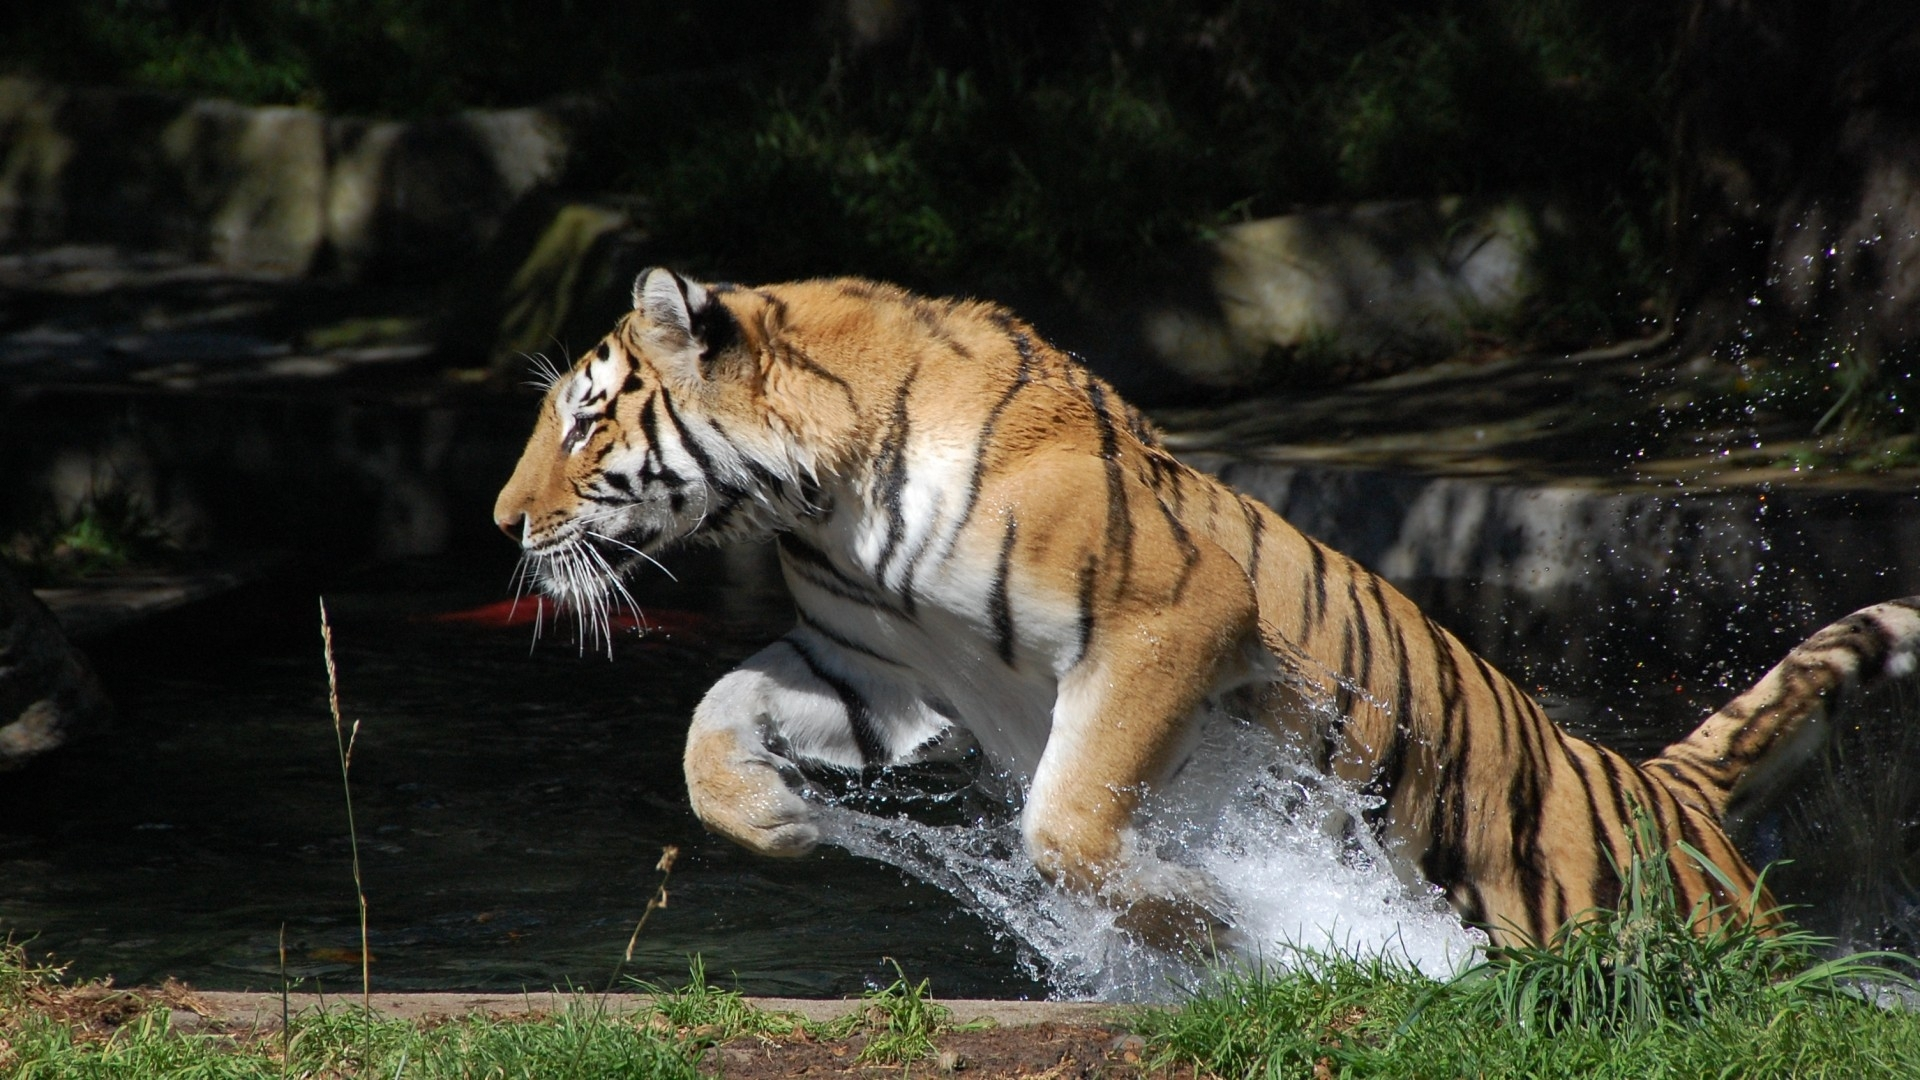 40700 download wallpaper Animals, Tigers screensavers and pictures for free